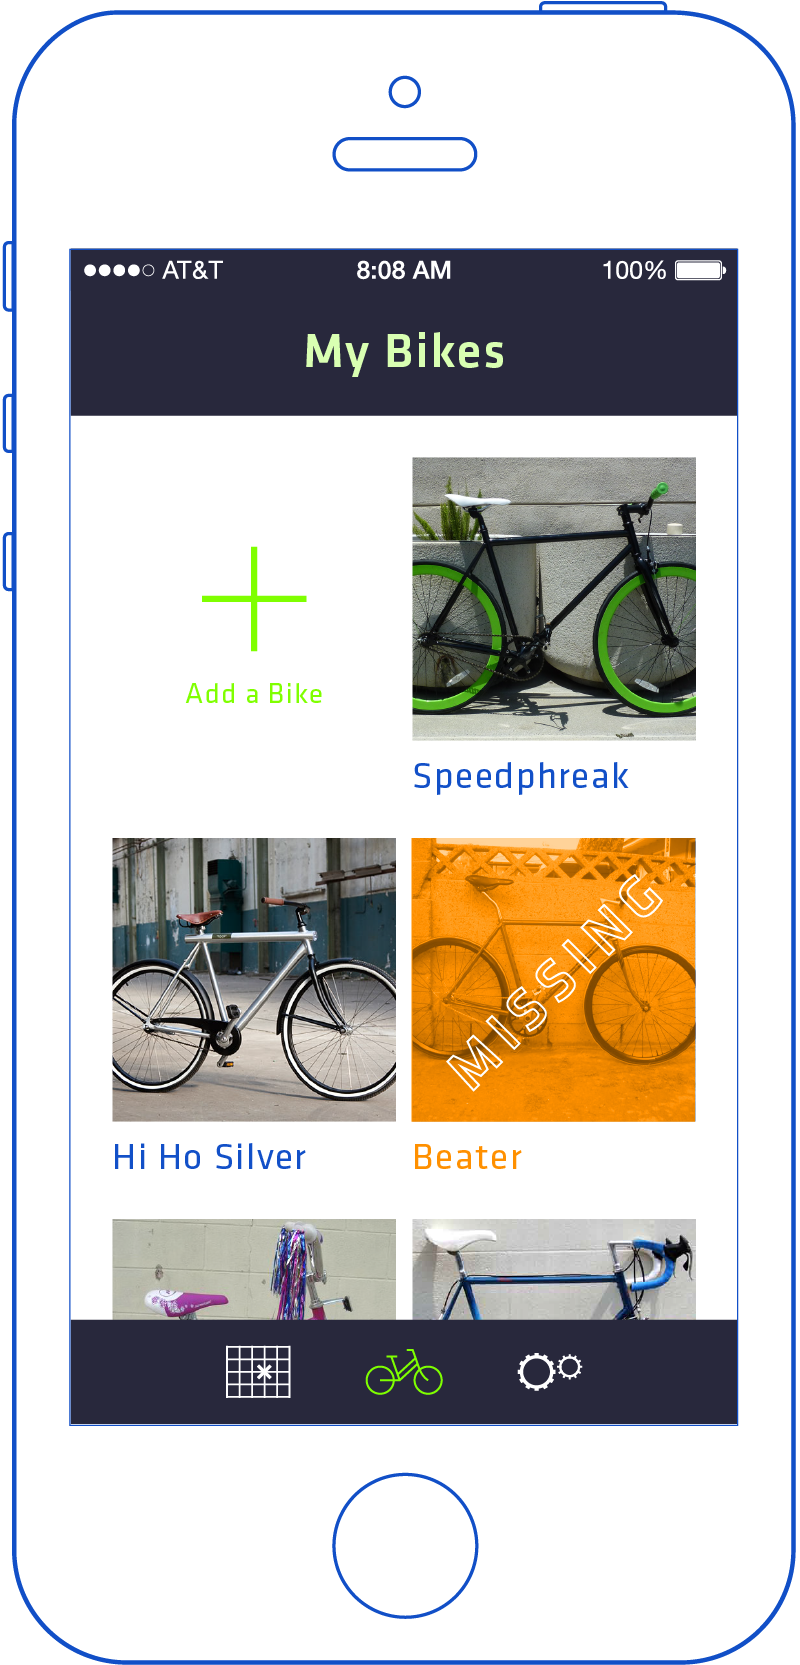 pinpoint app 2015-04-09_My Bikes INPHONE.png